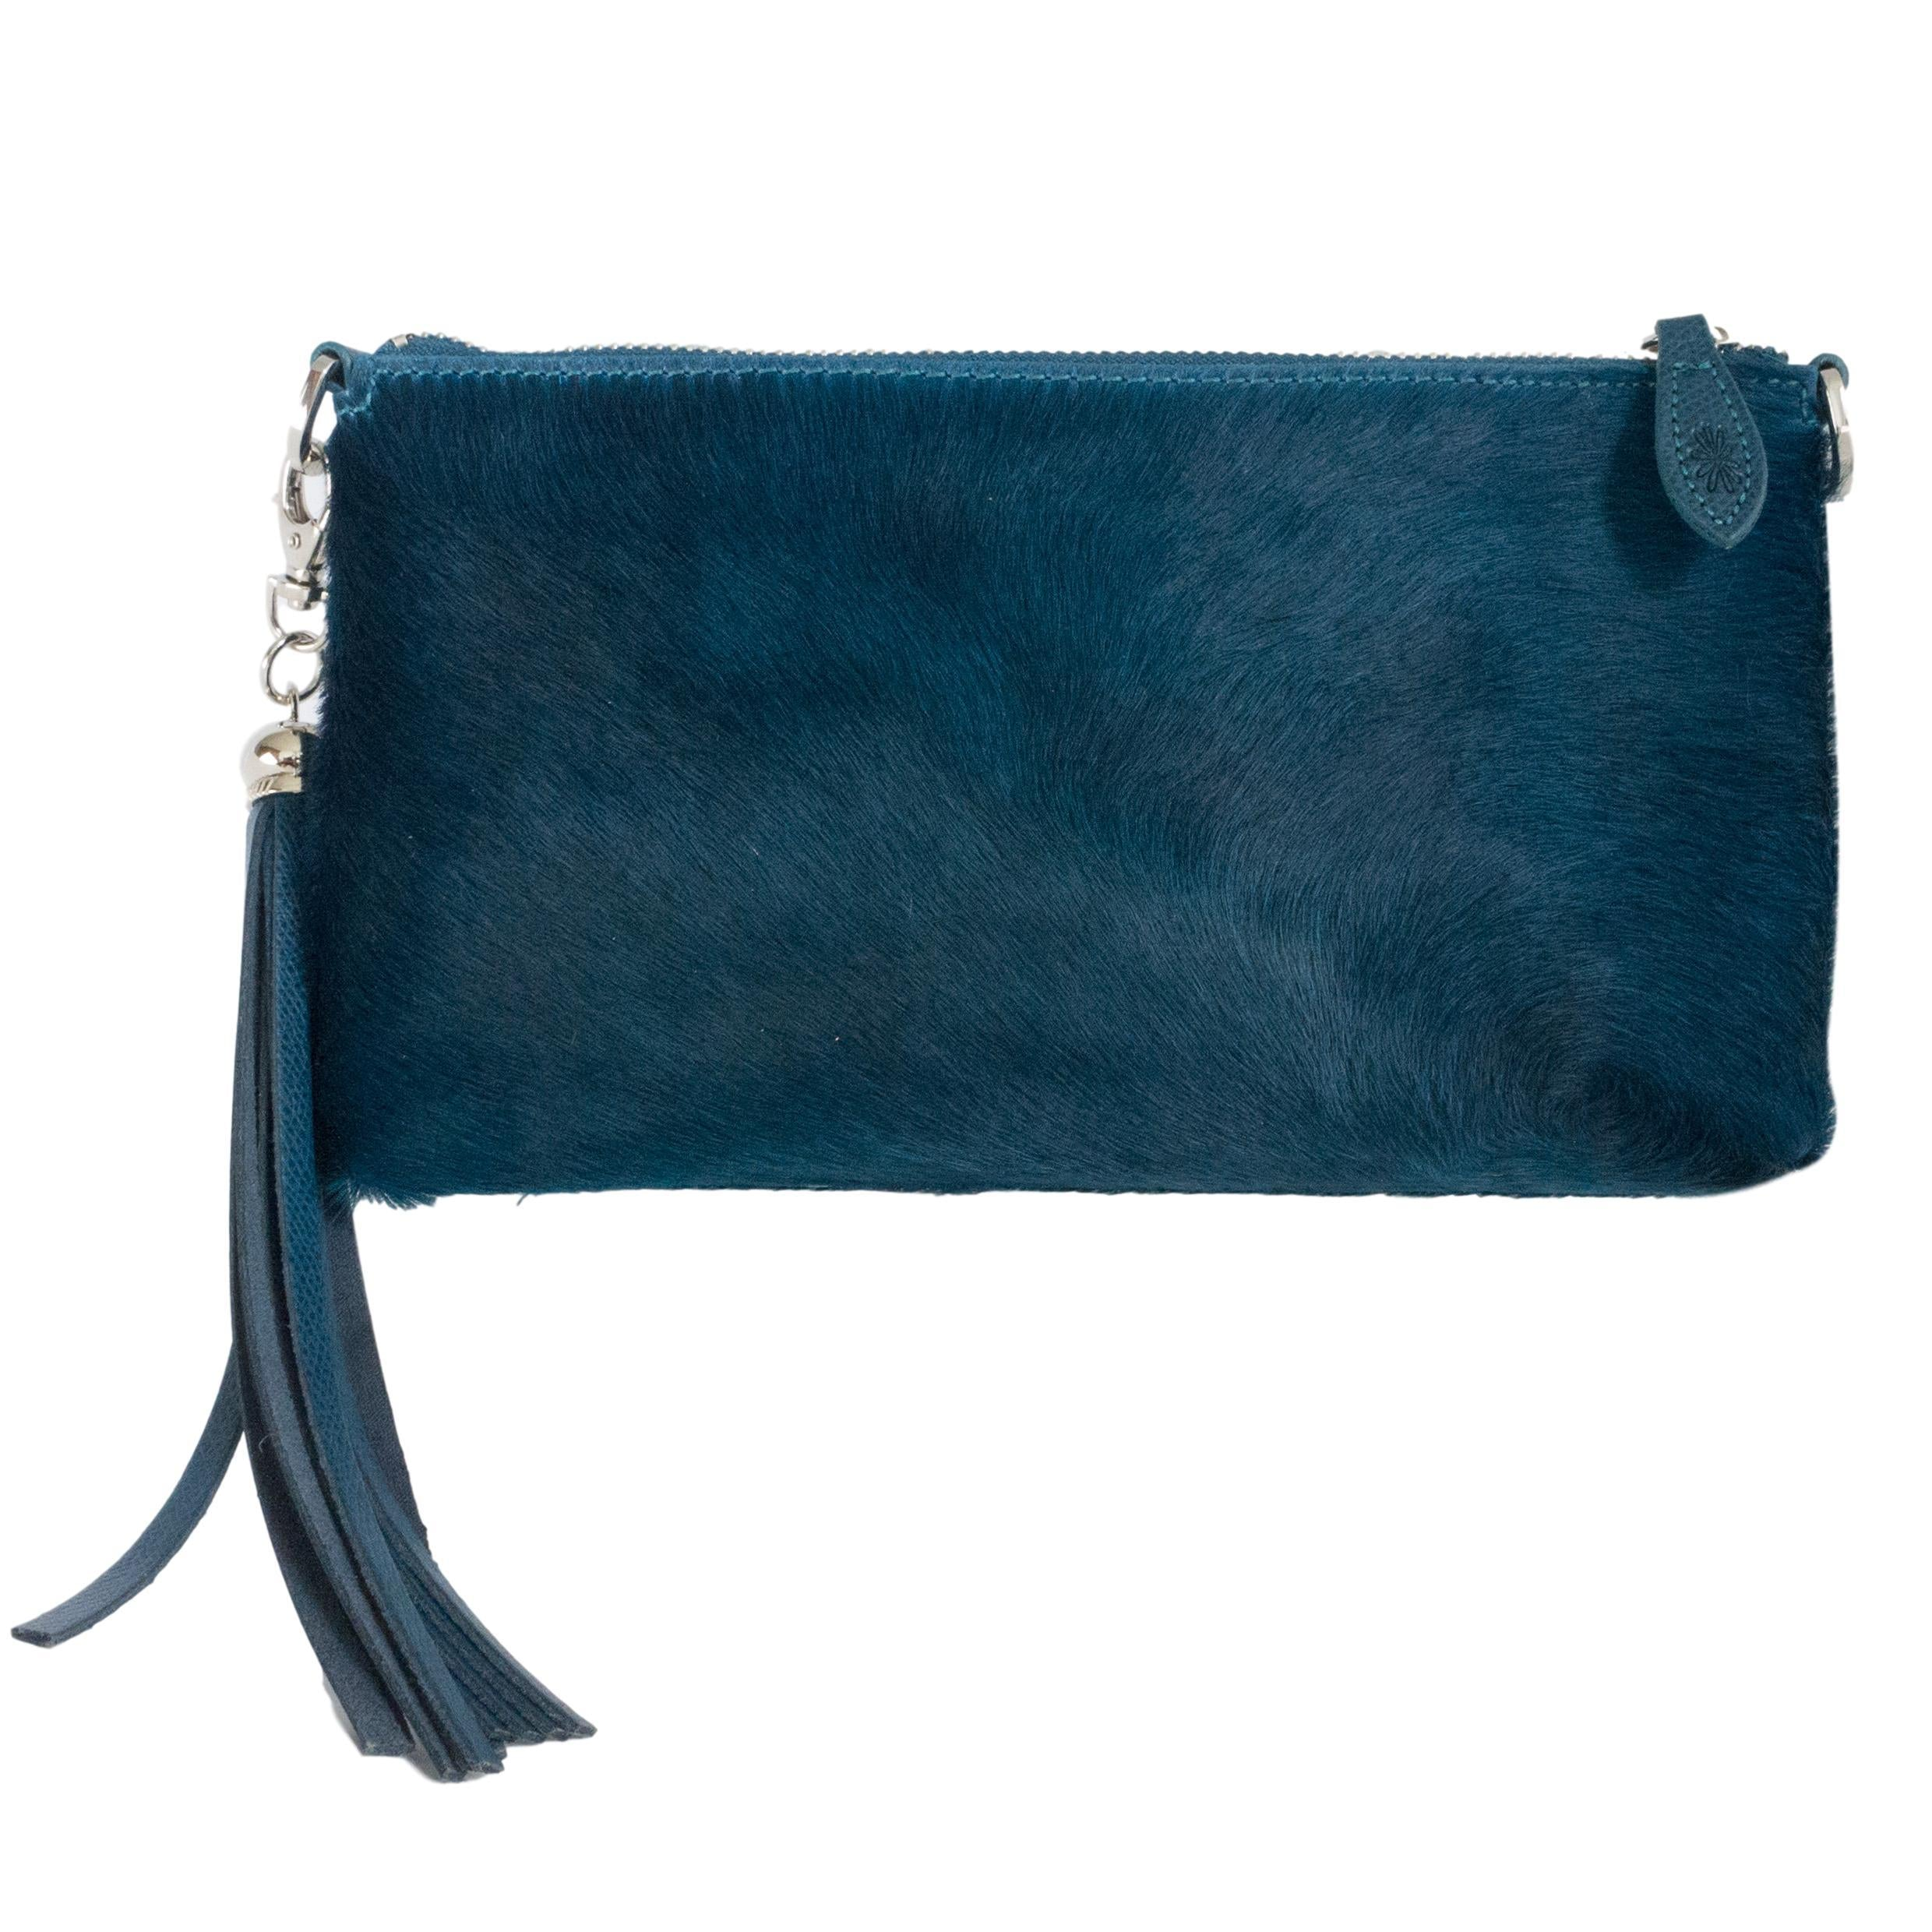 Clutch bag - Teal green Forget Me Not